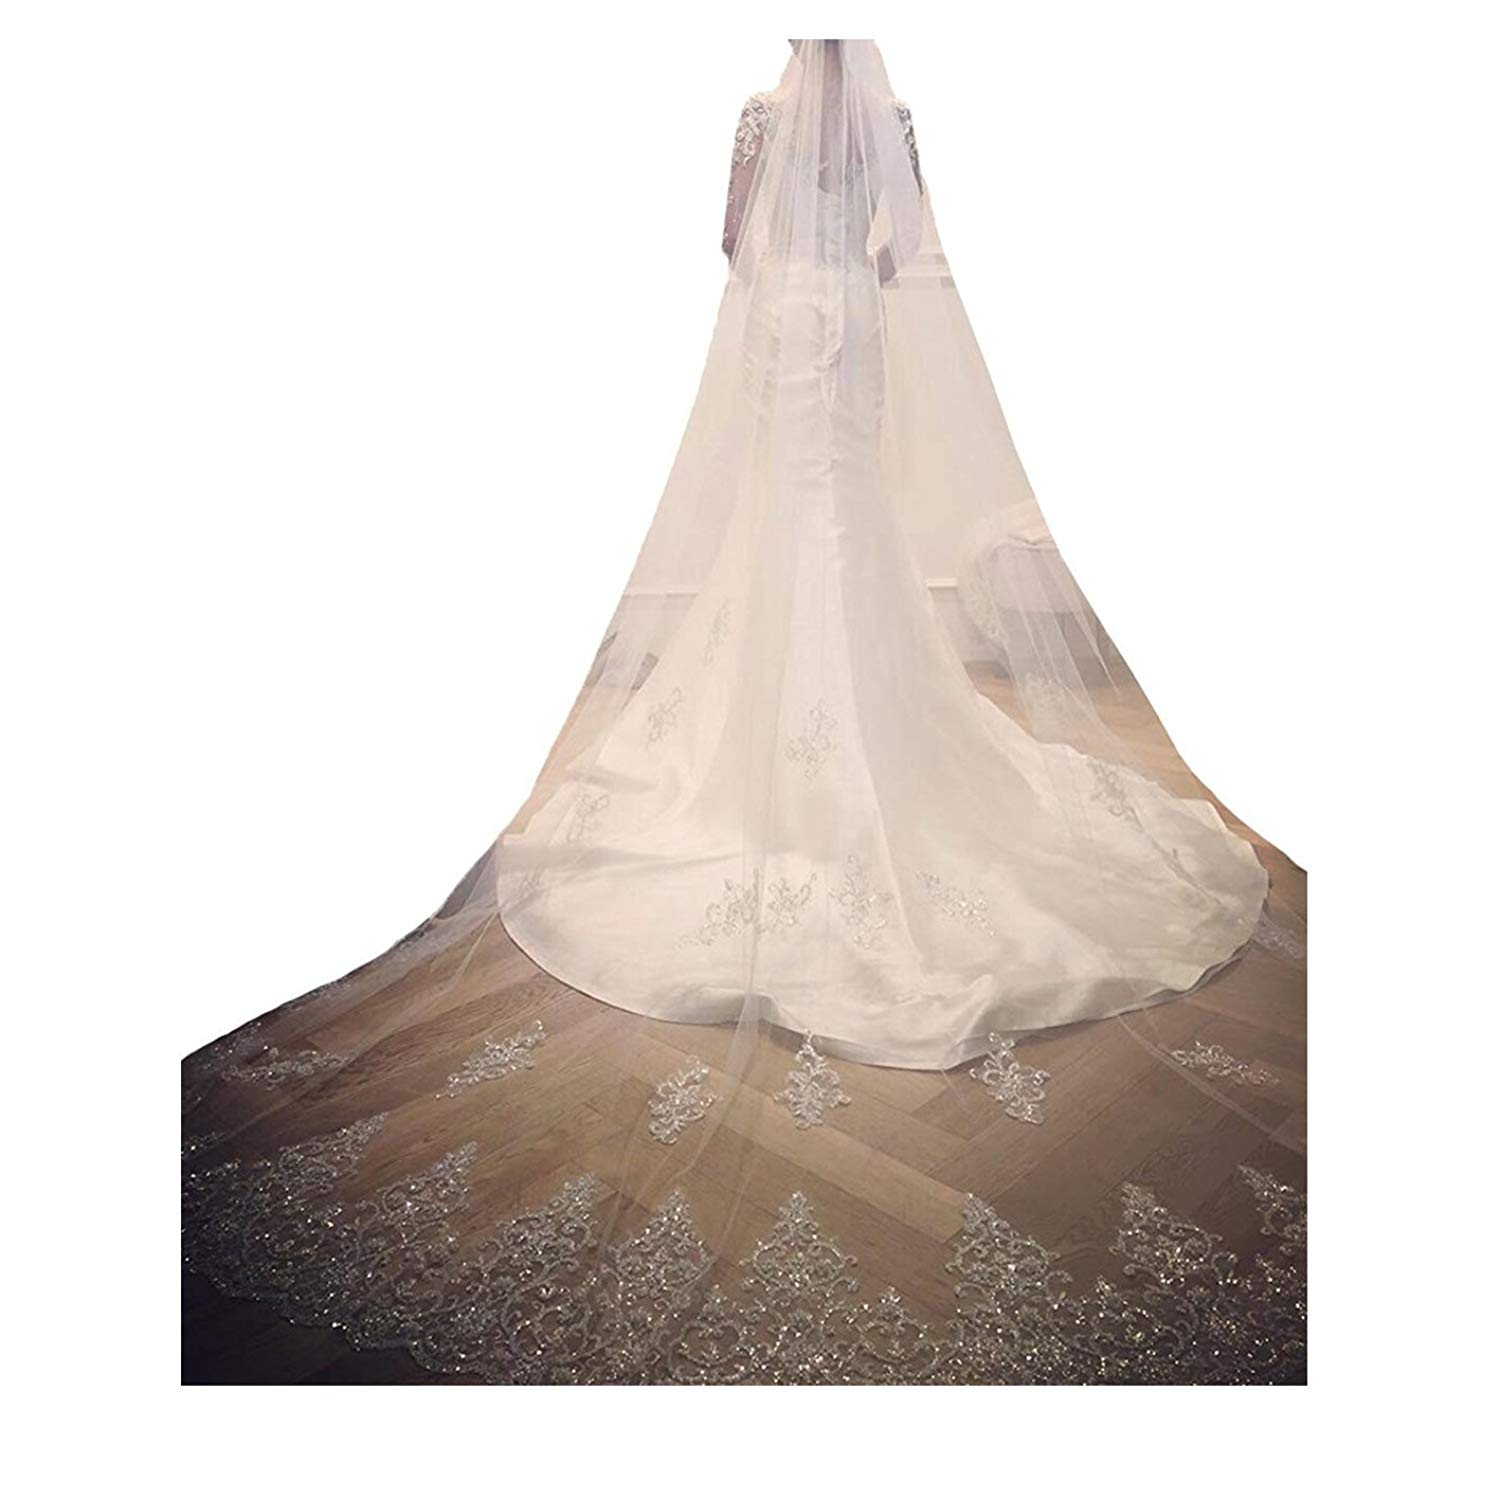 kelaixiang Elegant 1 Layer Lace Sequins Beaded Edge Bridal Wedding Veil with Comb